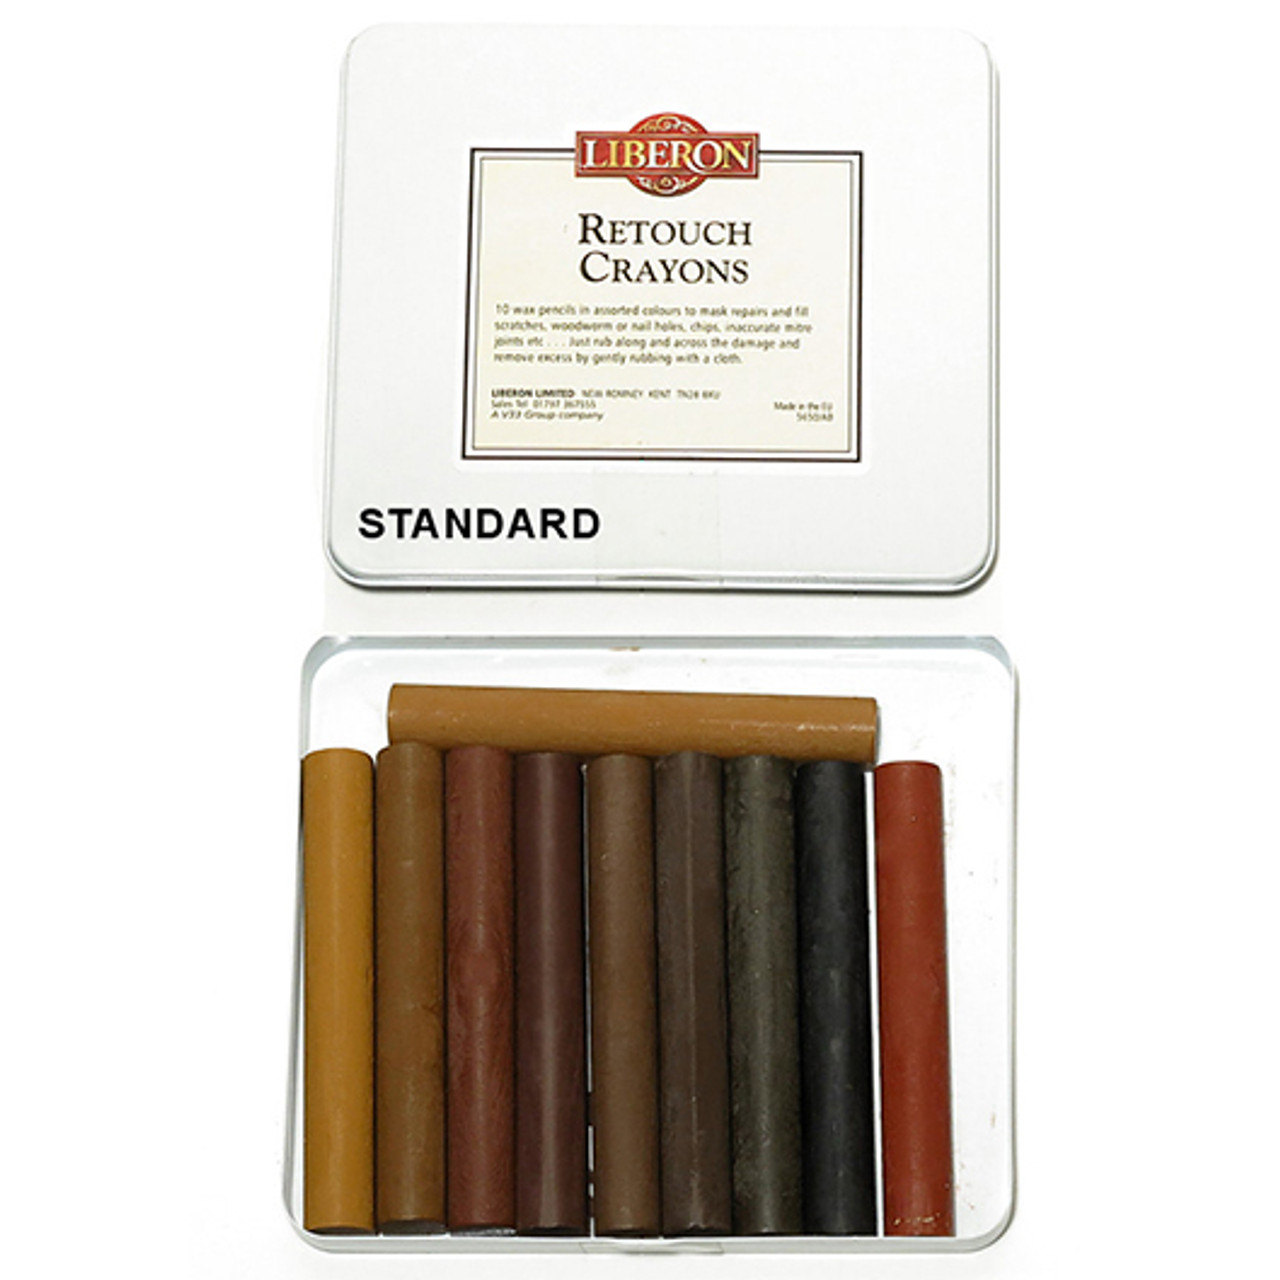 Liberon Retouch Crayons Kitchen - Tin of 10